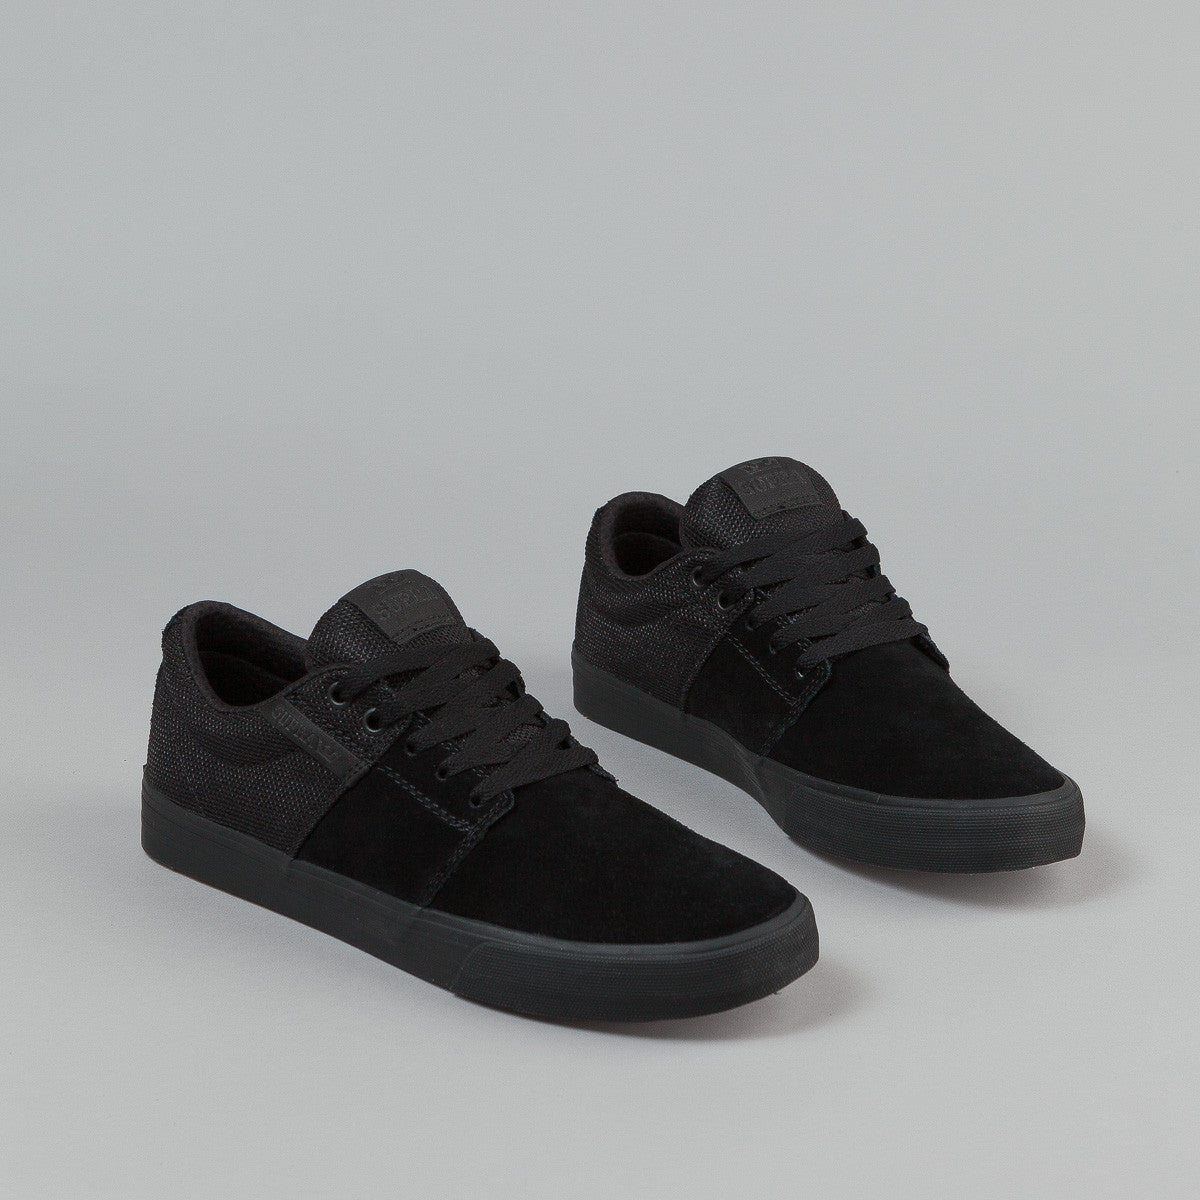 Supra Stacks Vulc II Shoes - Black / Black / Black